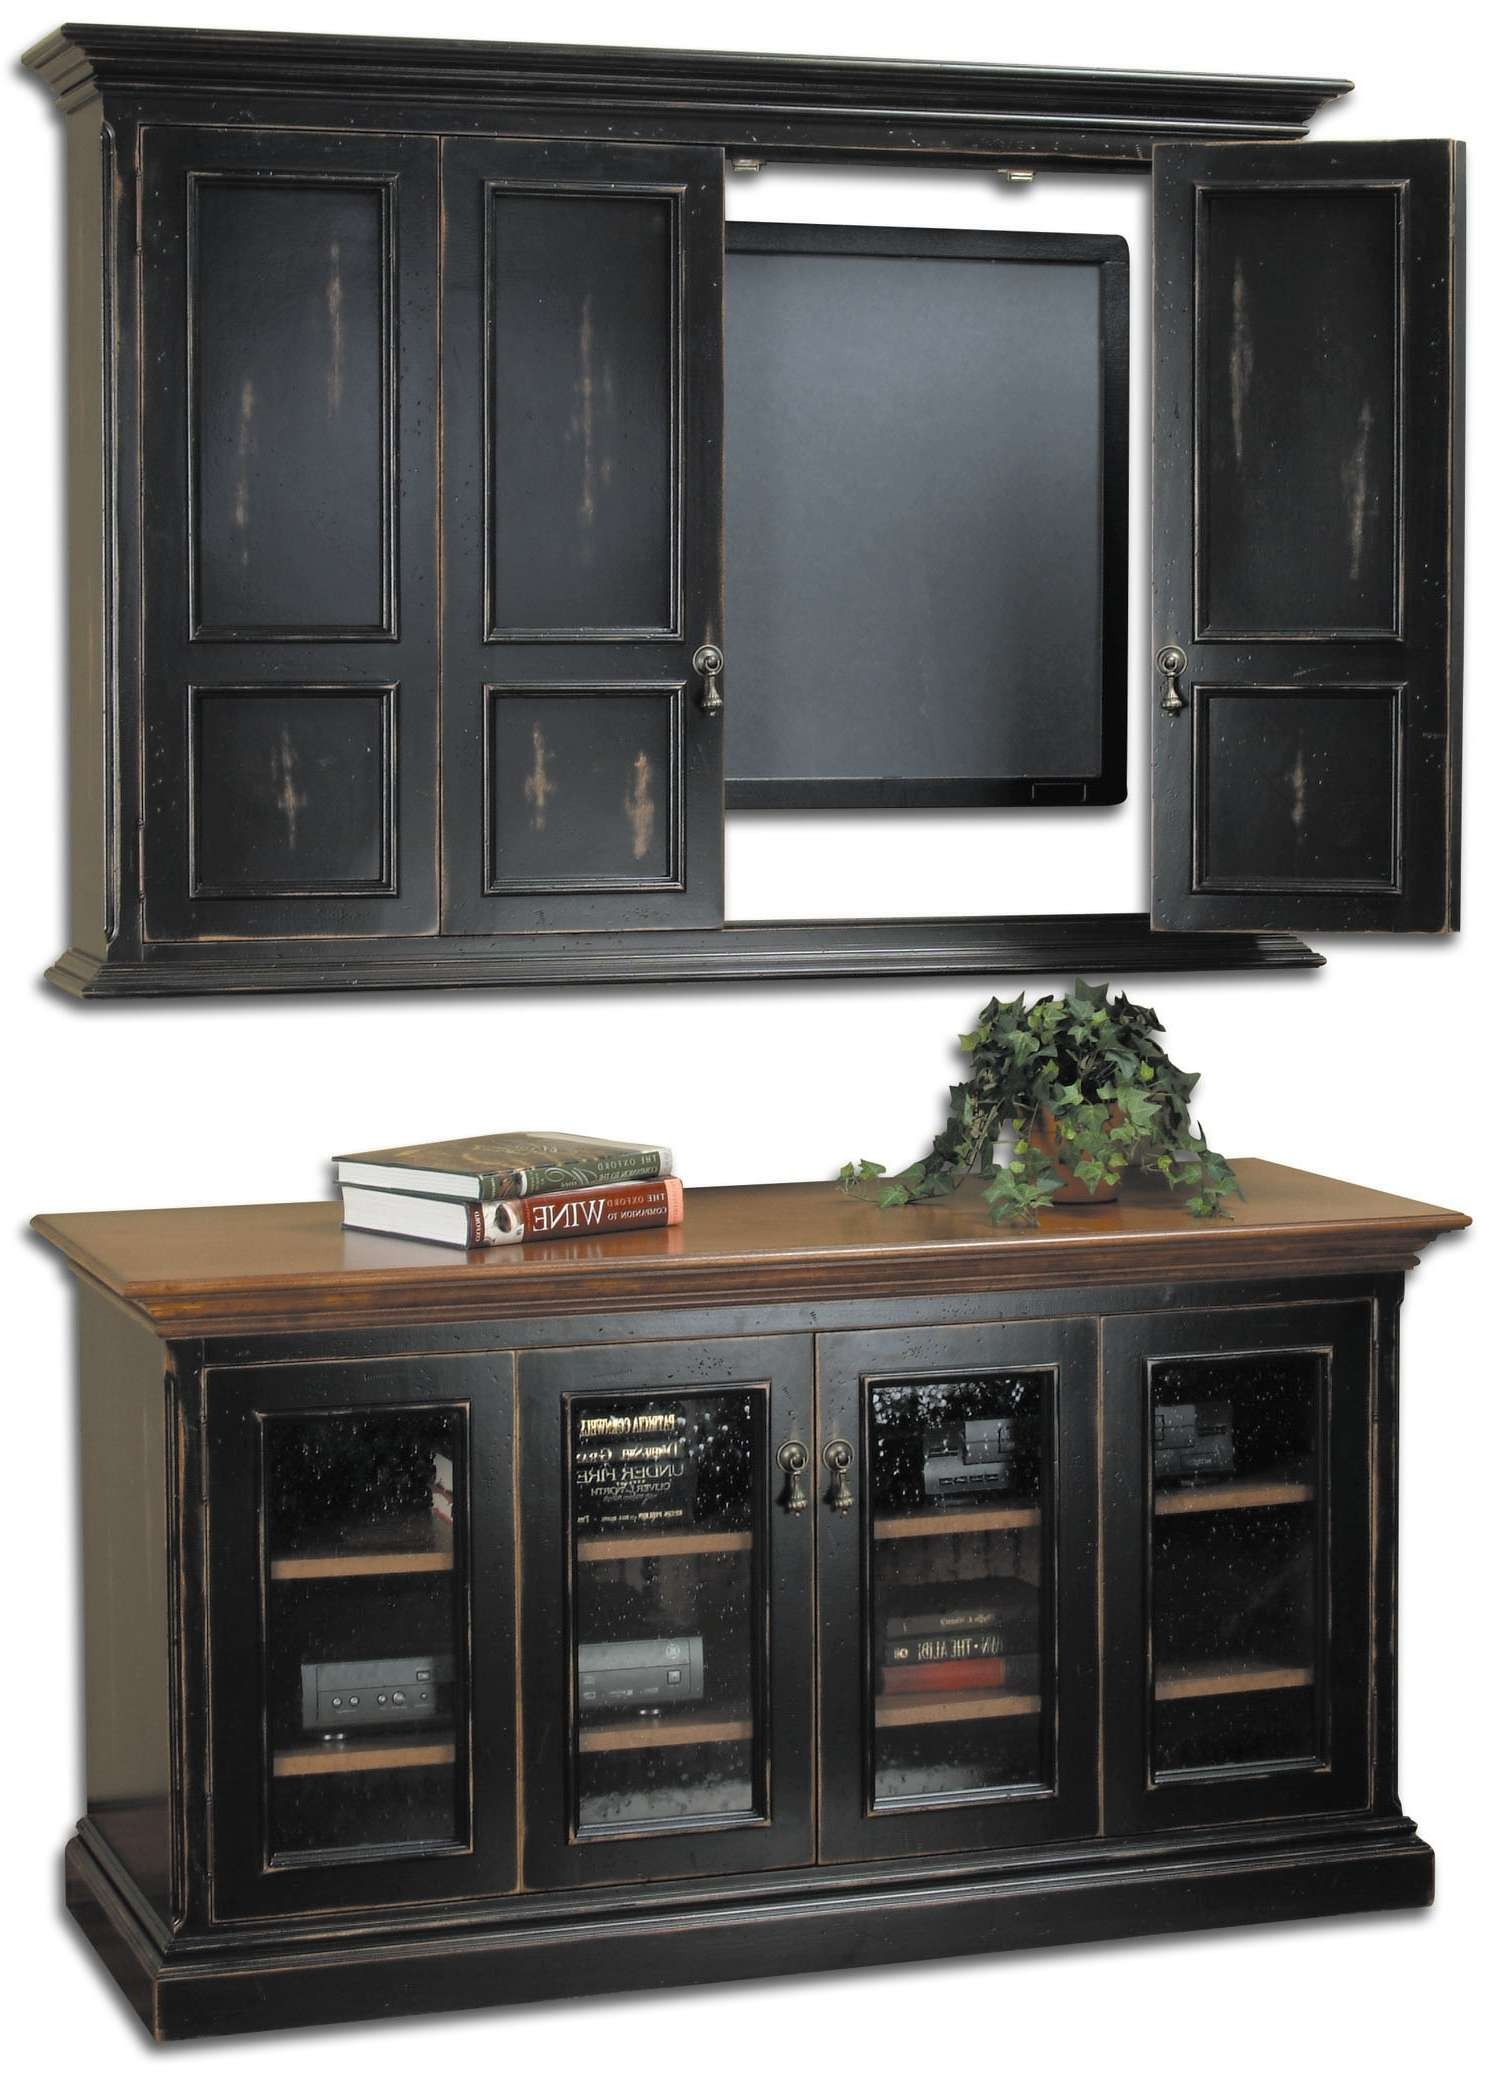 Media Cabinet Withoors To Hide Tv Hidden Wooden Cabinets Storage Inside  Enclosed Tv Cabinets With Doors